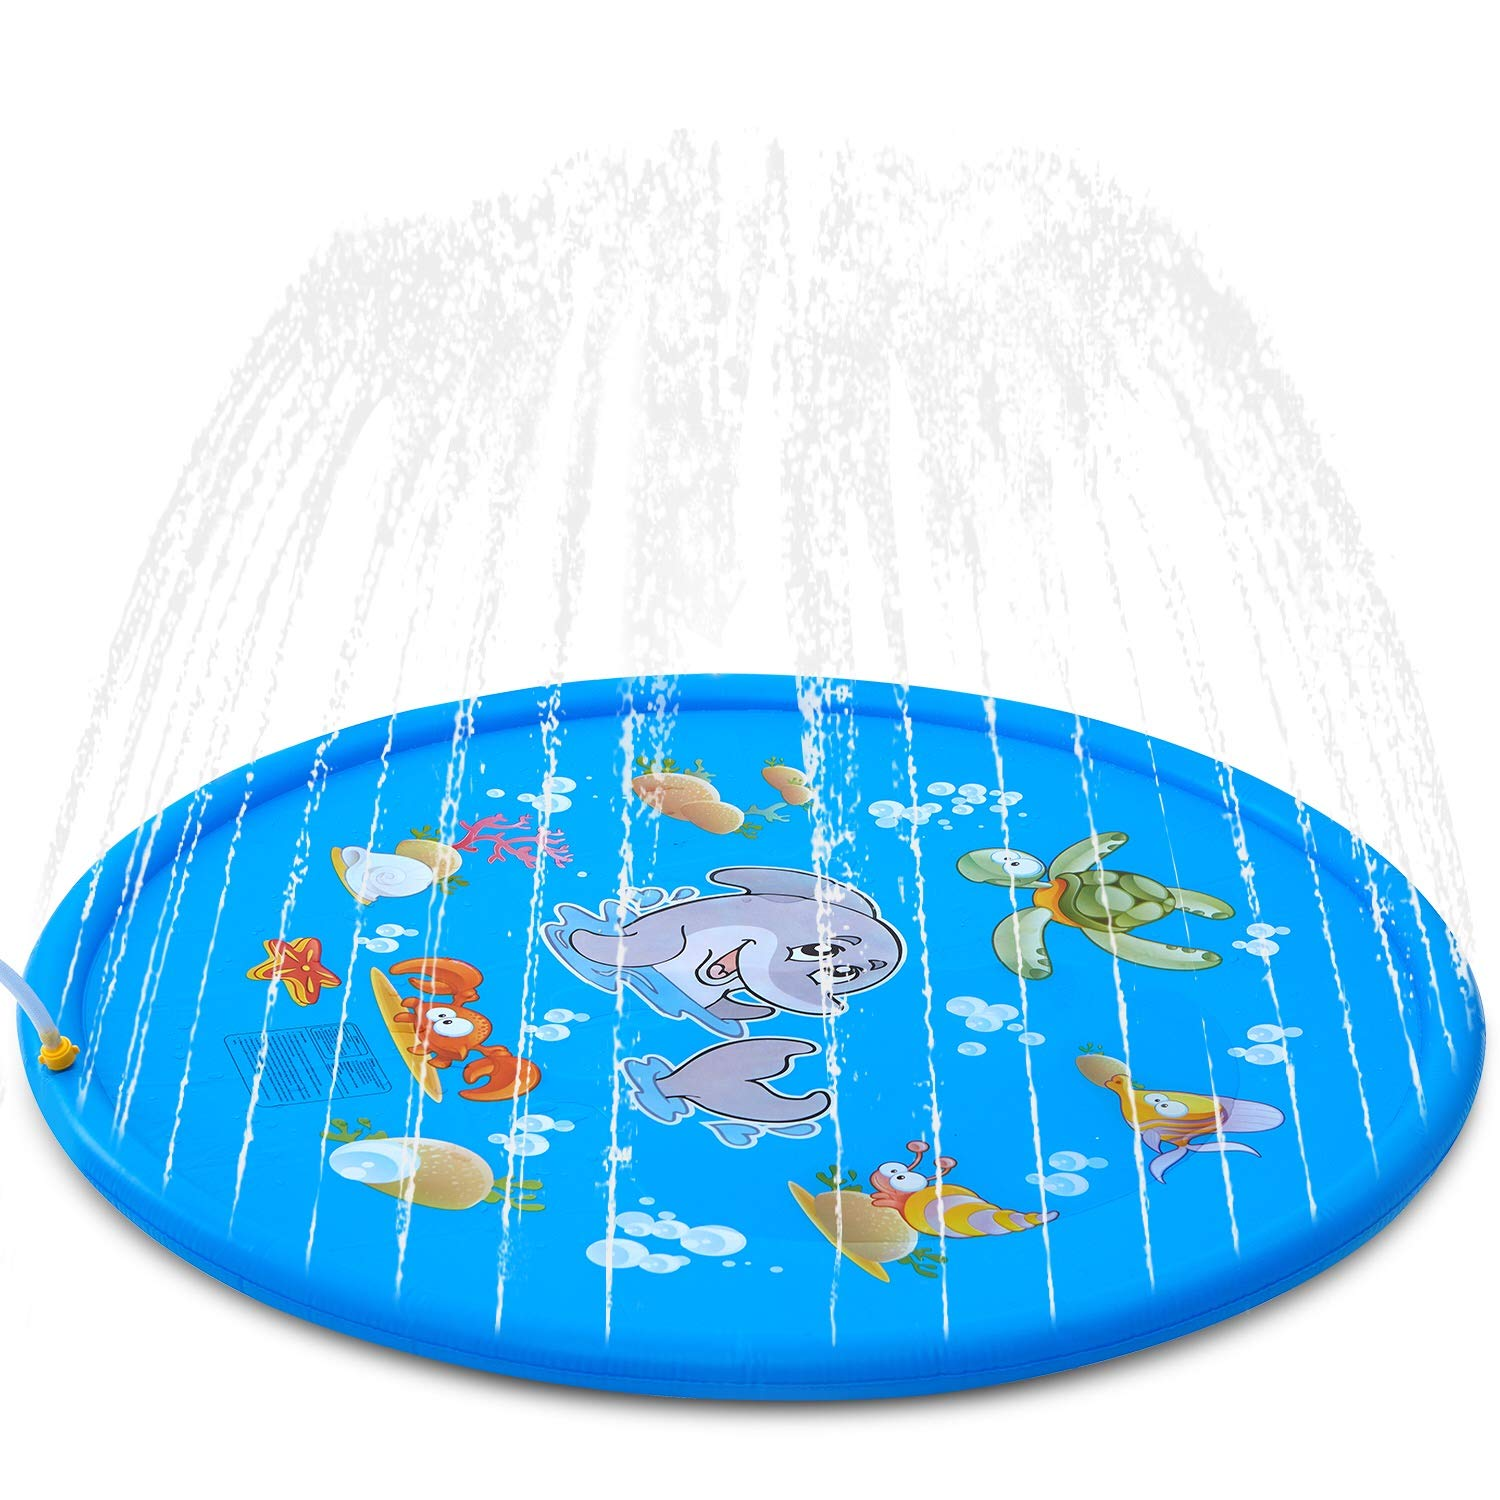 Splash Pad Kids Sprinkler Pad For Toodler Boys Girls Inflatable Shark Water Toys For Outdoor Upgraded Sprinkle Splash Play Mat